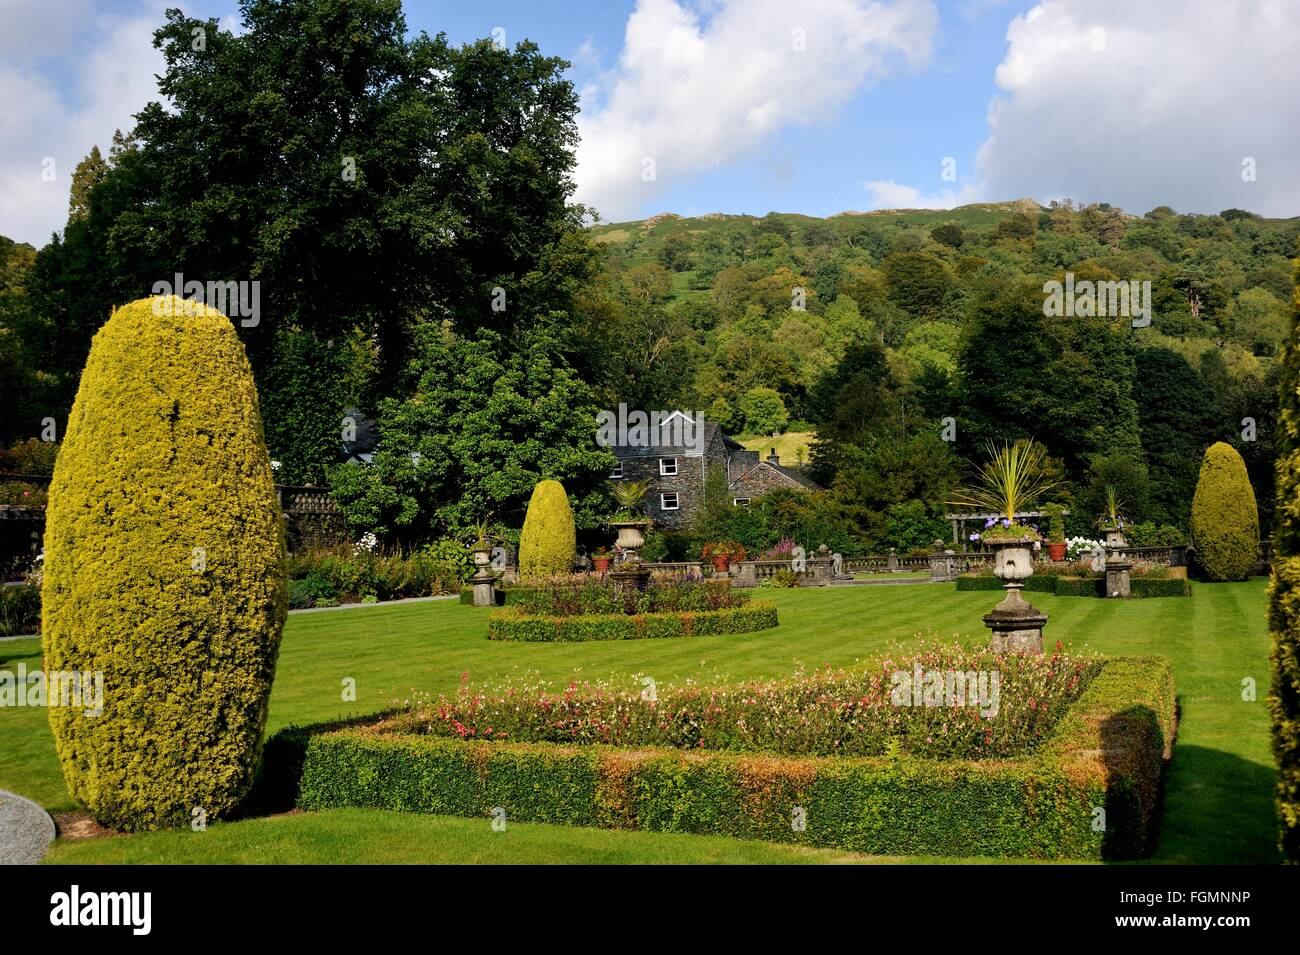 Rydal Hall, Rydal Village, Ambleside, Lake District National Park, Cumbria, England, UK, Formal gardens, Lawns, - Stock Image